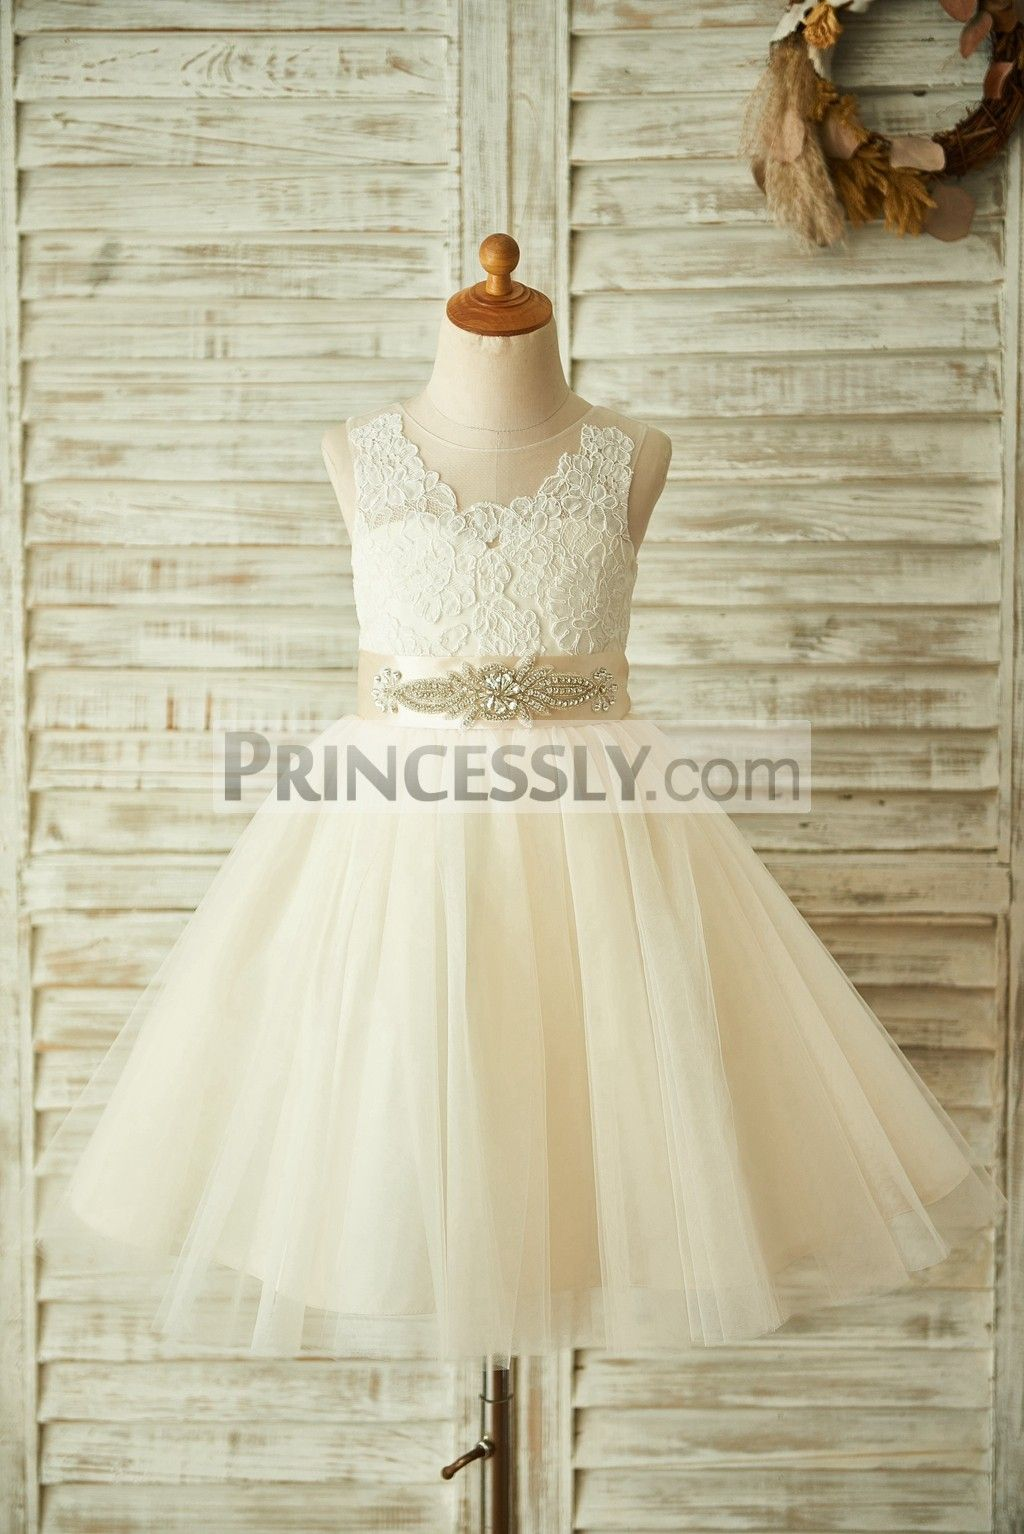 Girls wedding dress  Champagne Lace Tulle Sheer Back Wedding Flower Girl Dress with